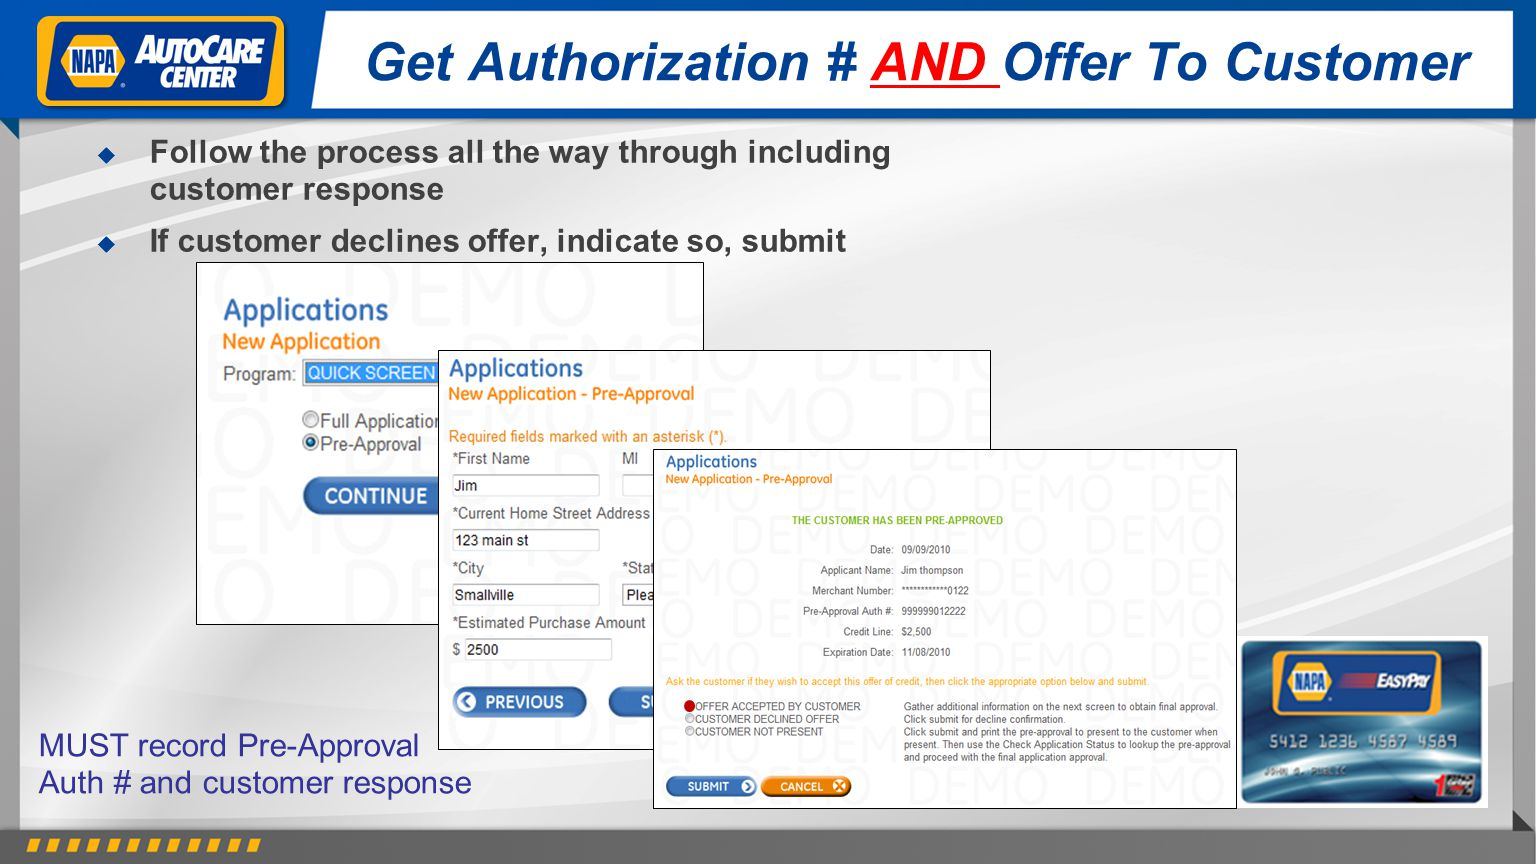 Get Authorization # AND Offer To Customer